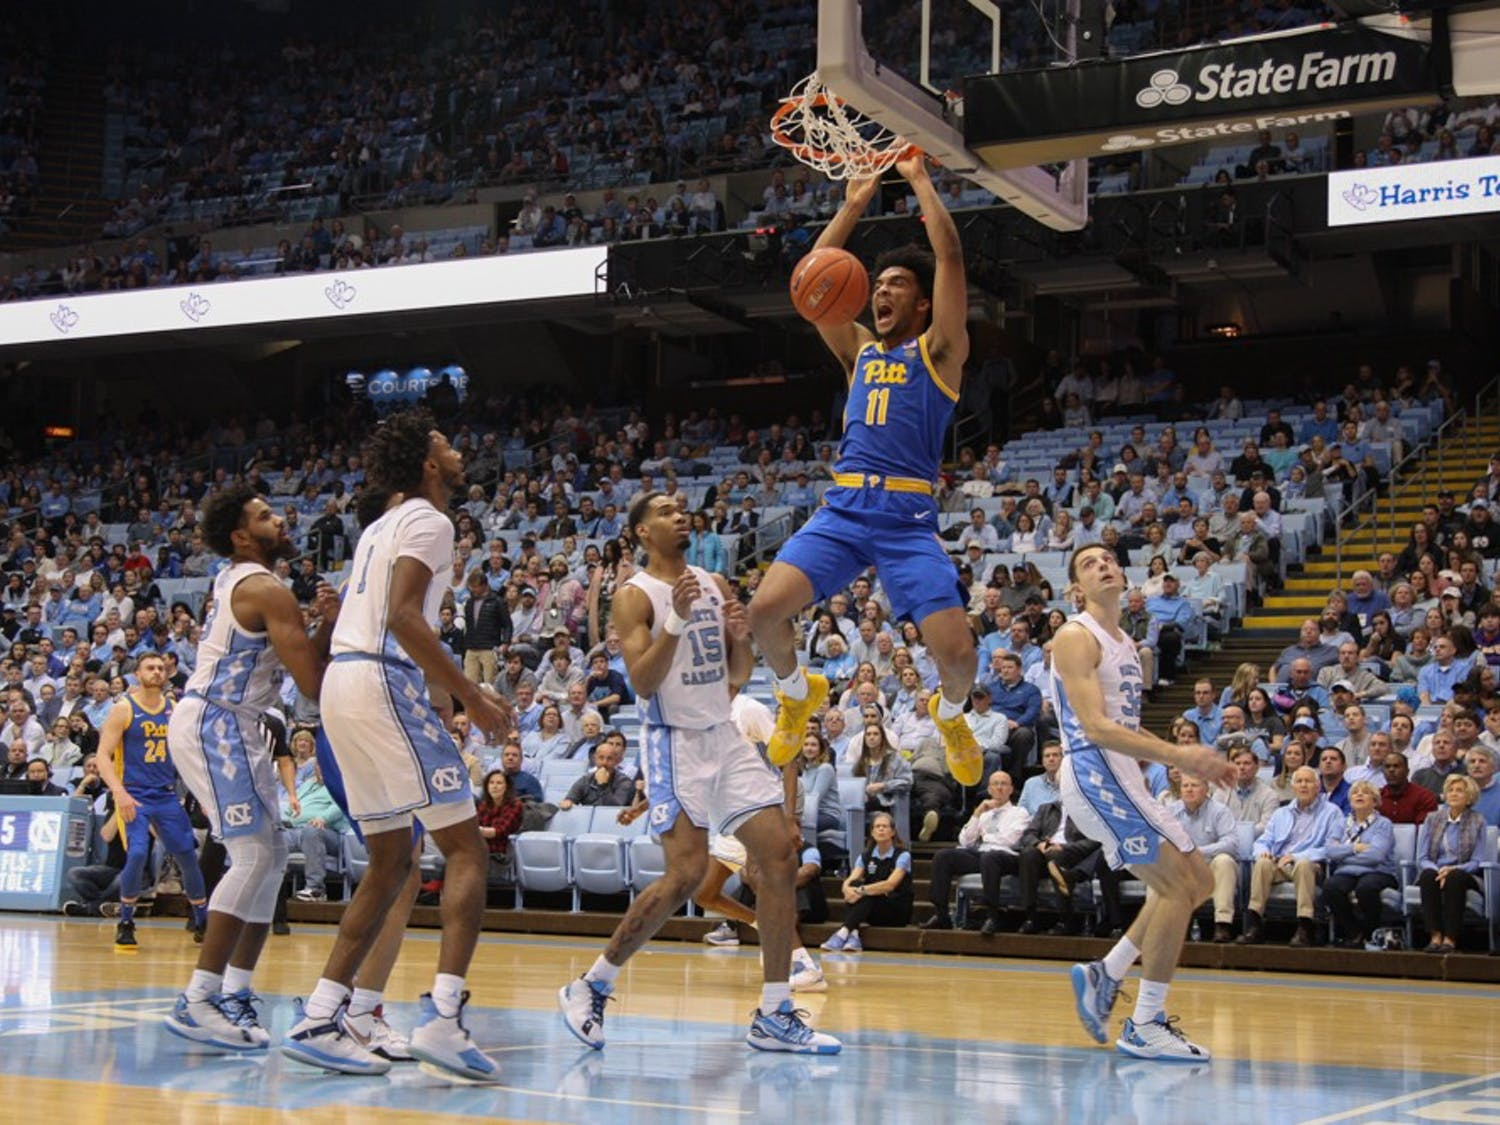 Pitt forward Justin Champagnie (11) dunks the ball during the game on Wednesday Jan. 8, 2020. UNC lost to Pitt 65-73.